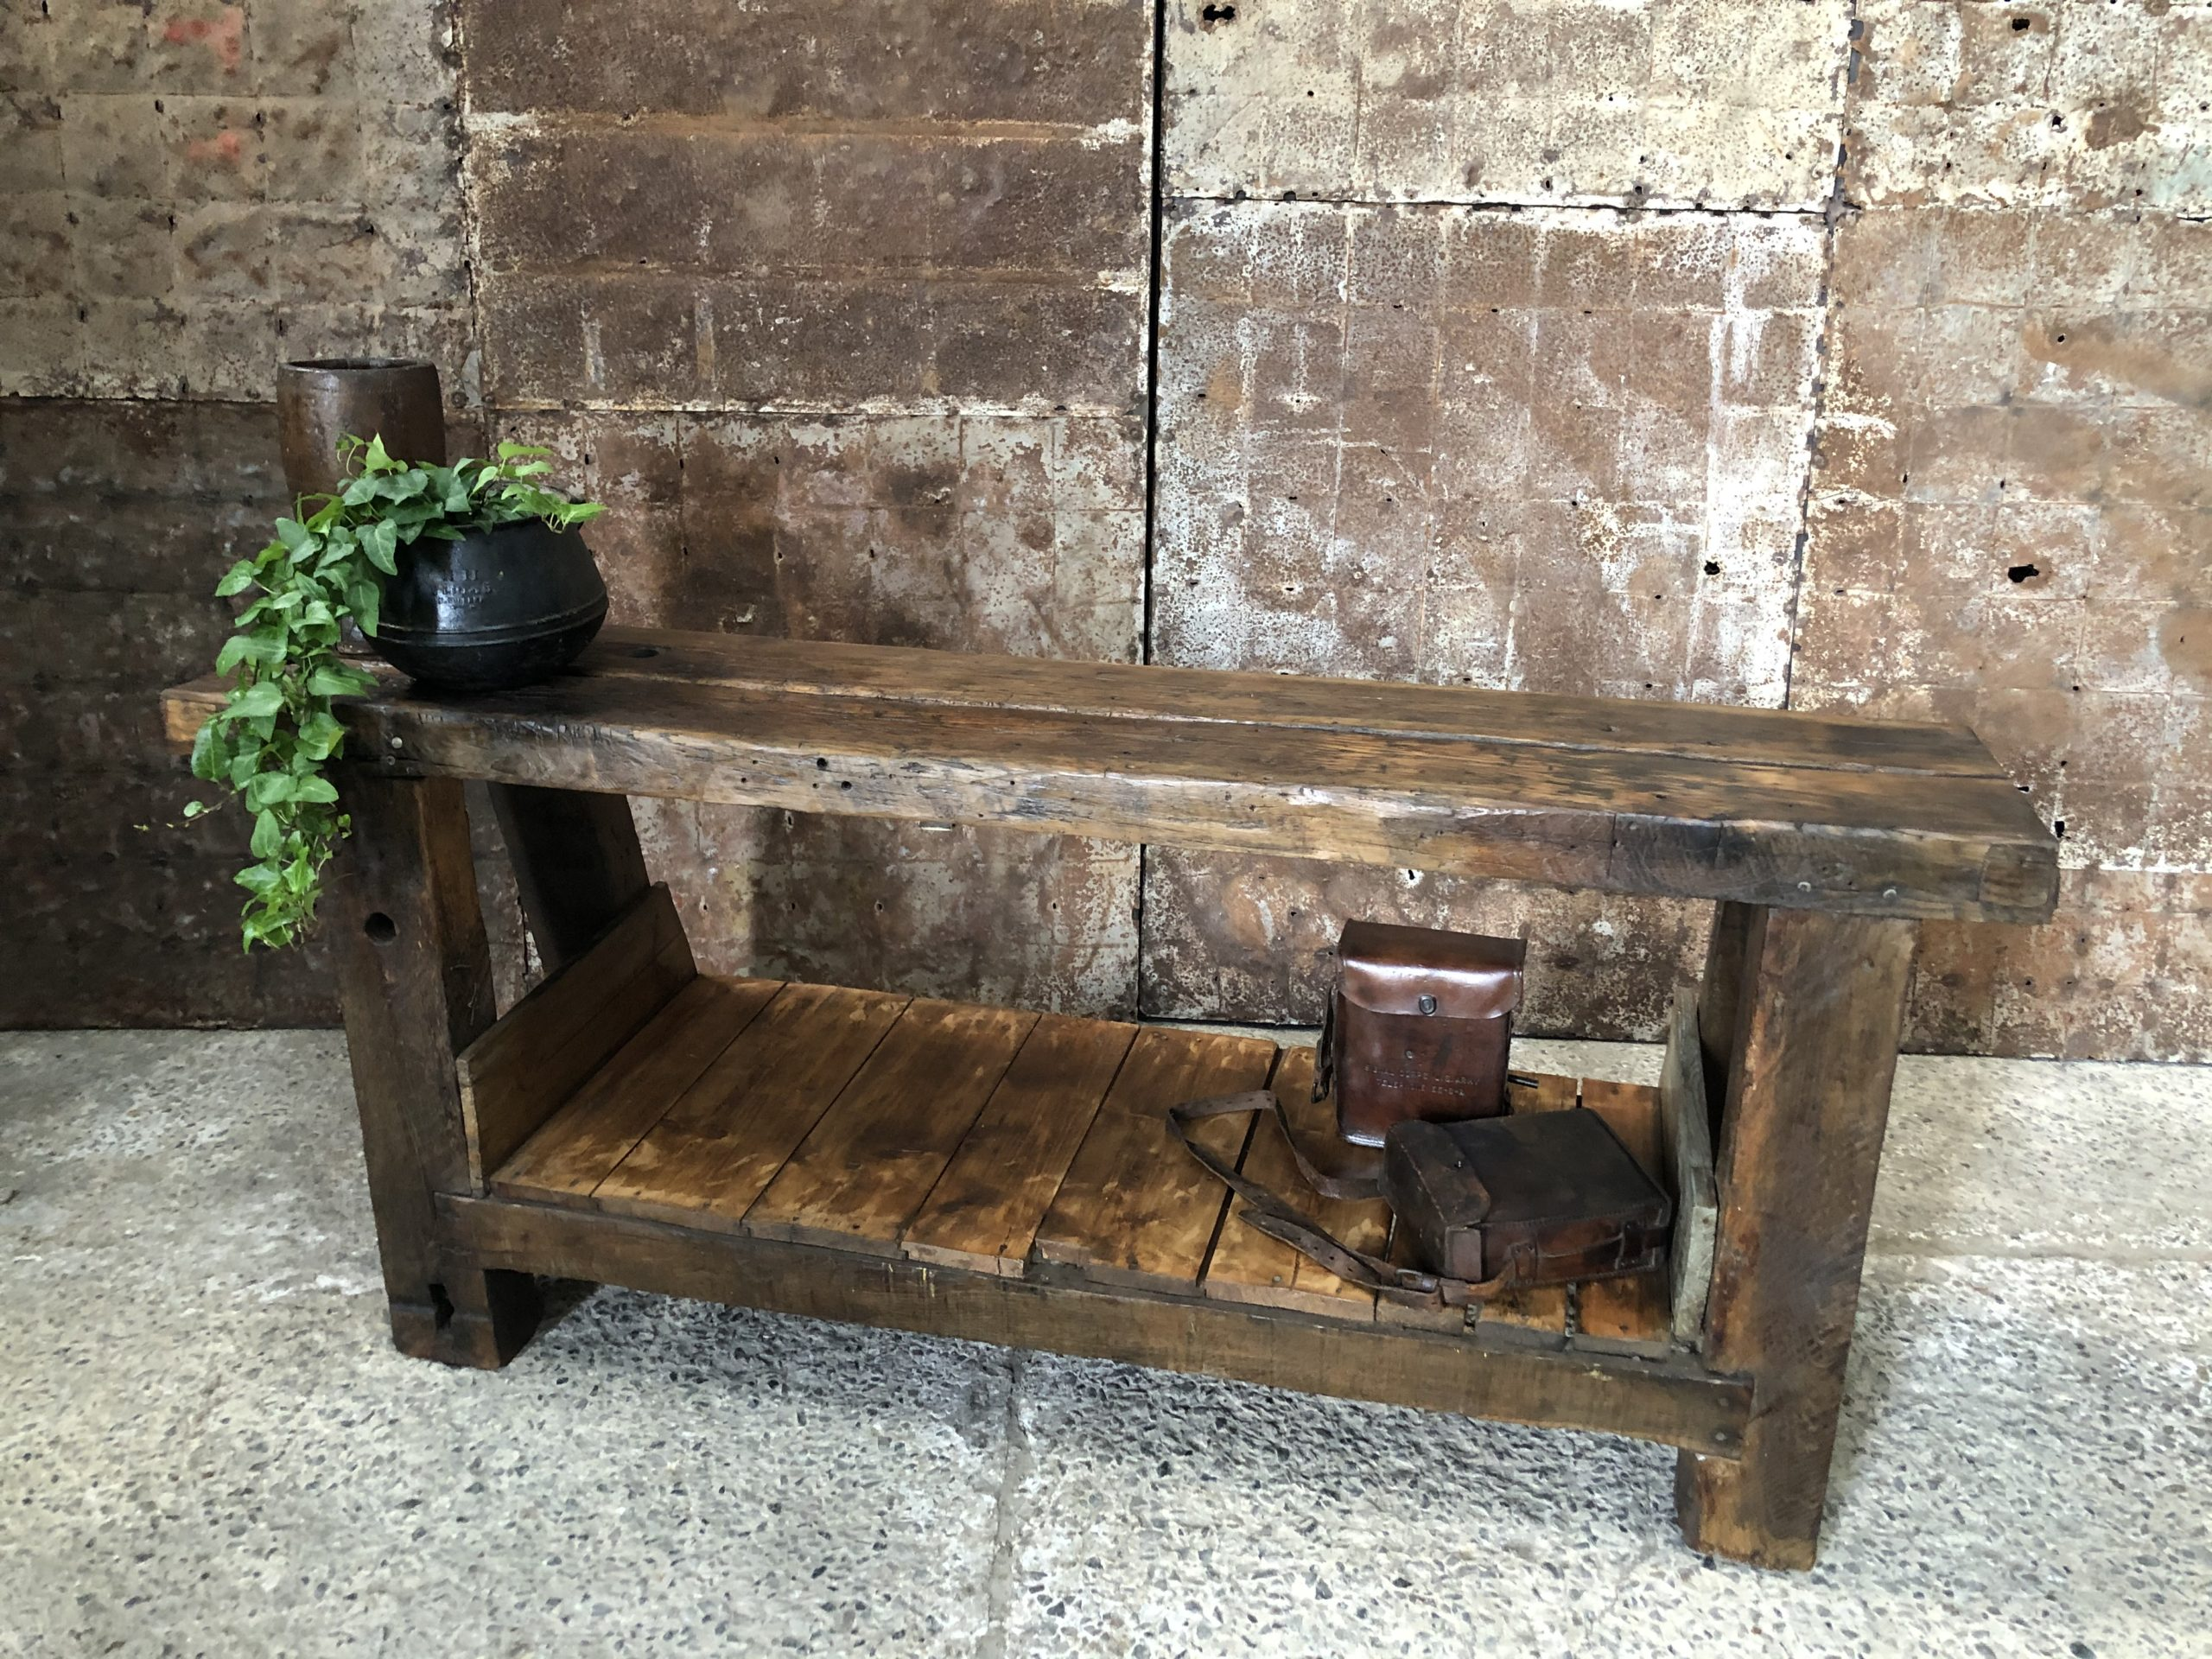 Old working bench